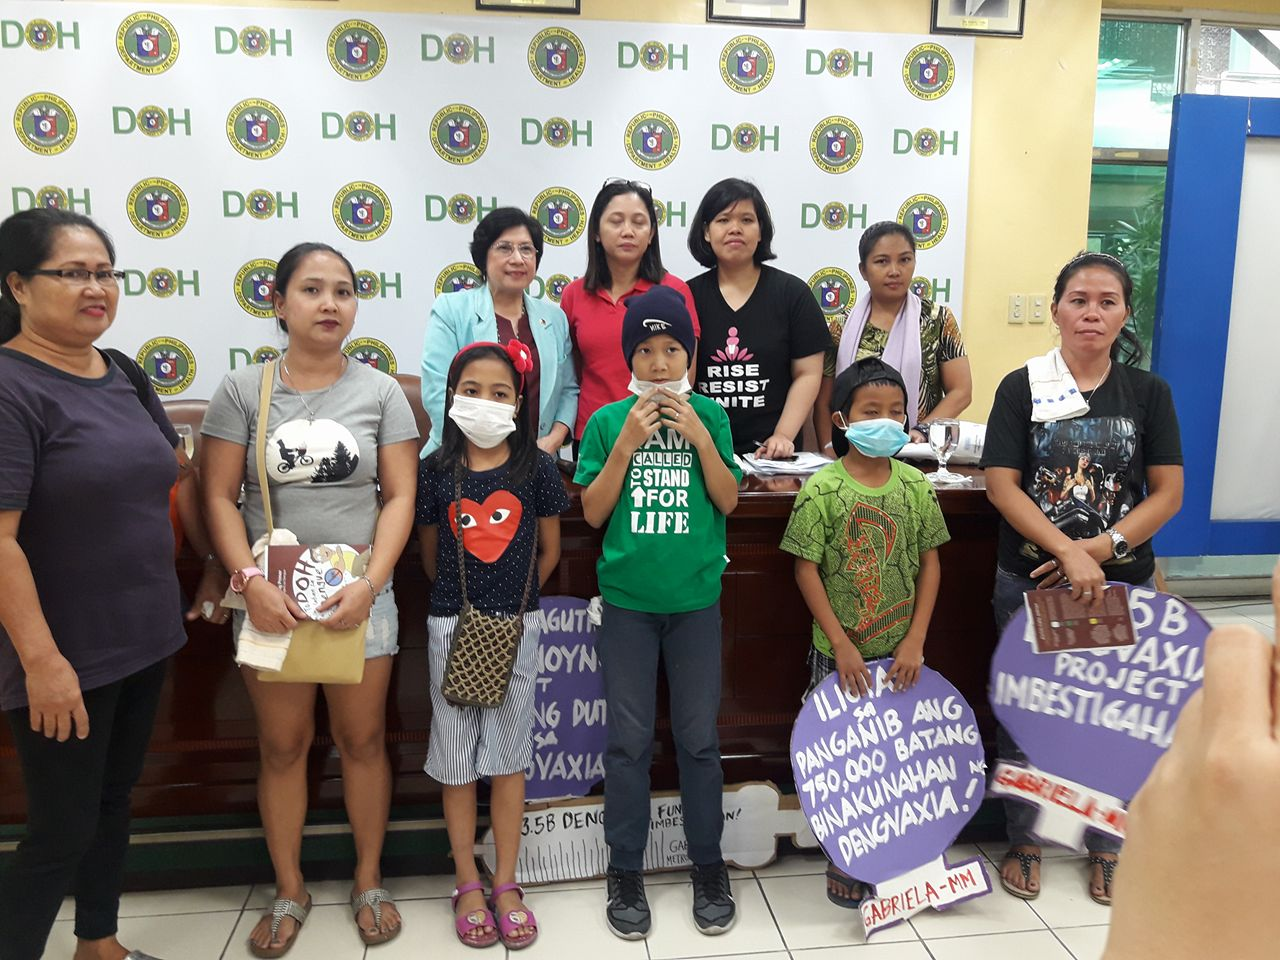 DENGVAXIA HELP. Assistant Secretary Maria Francia Laxamana (in light blue) and Gabriela Rep. Arlene Brosas (in pink) pose with members of Gabriela-Metro Manila following their dialogue at the Department of Health on Wednesday (Feb. 7, 2018). The department assured members of Gabriela that they will provide medical services to children who received Dengvaxia, after the latter staged a protest to air concerns over the children's safety. (Photo by Leilani S. Junio)